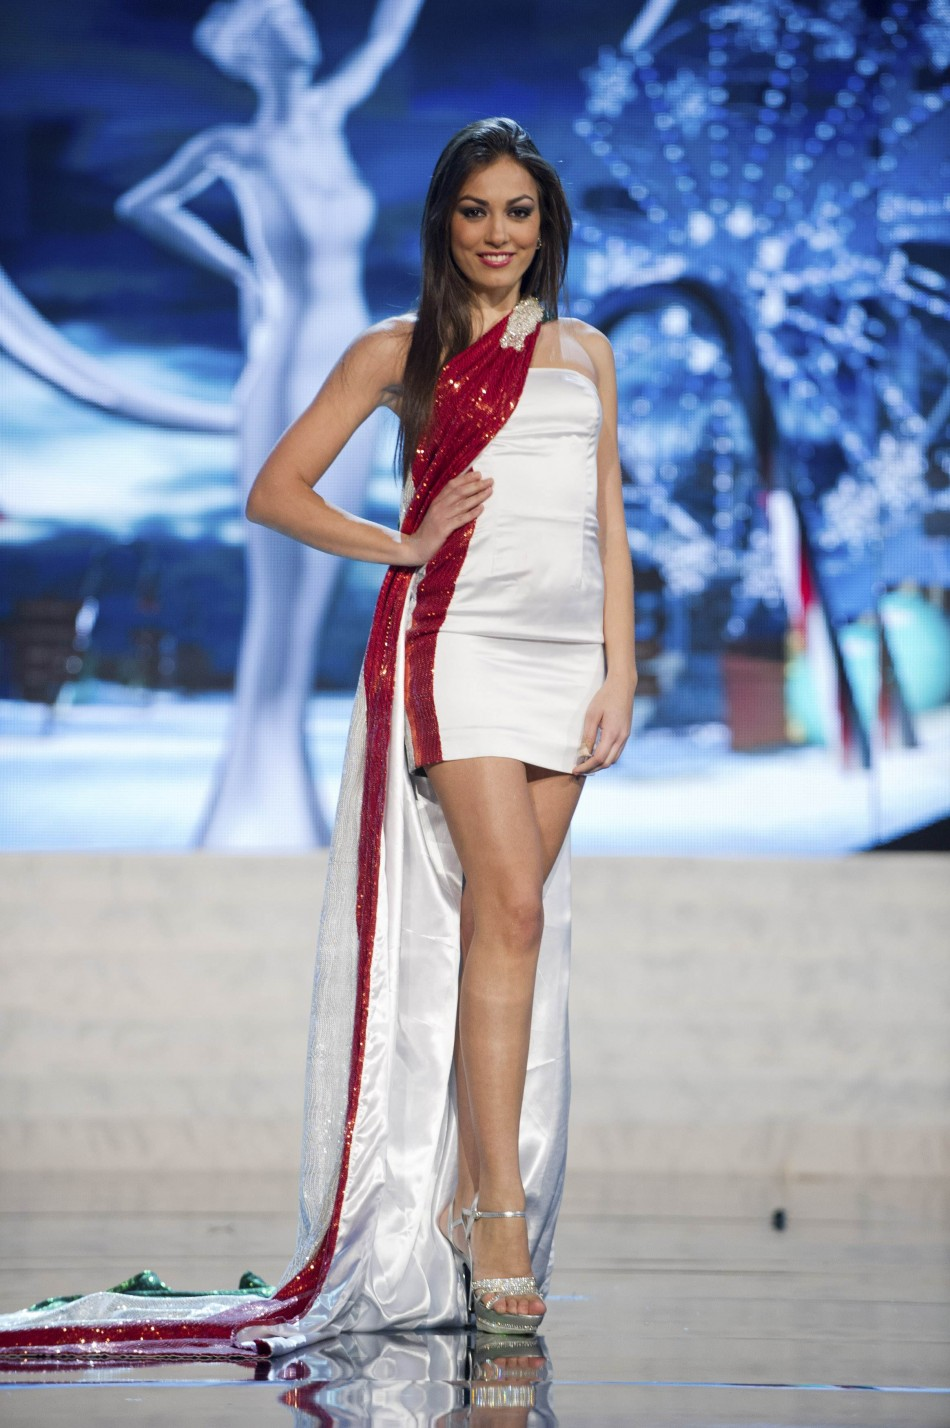 Miss Italy Grazia Pinto on stage at the 2012 Miss Universe National Costume Show at PH Live in Las Vegas